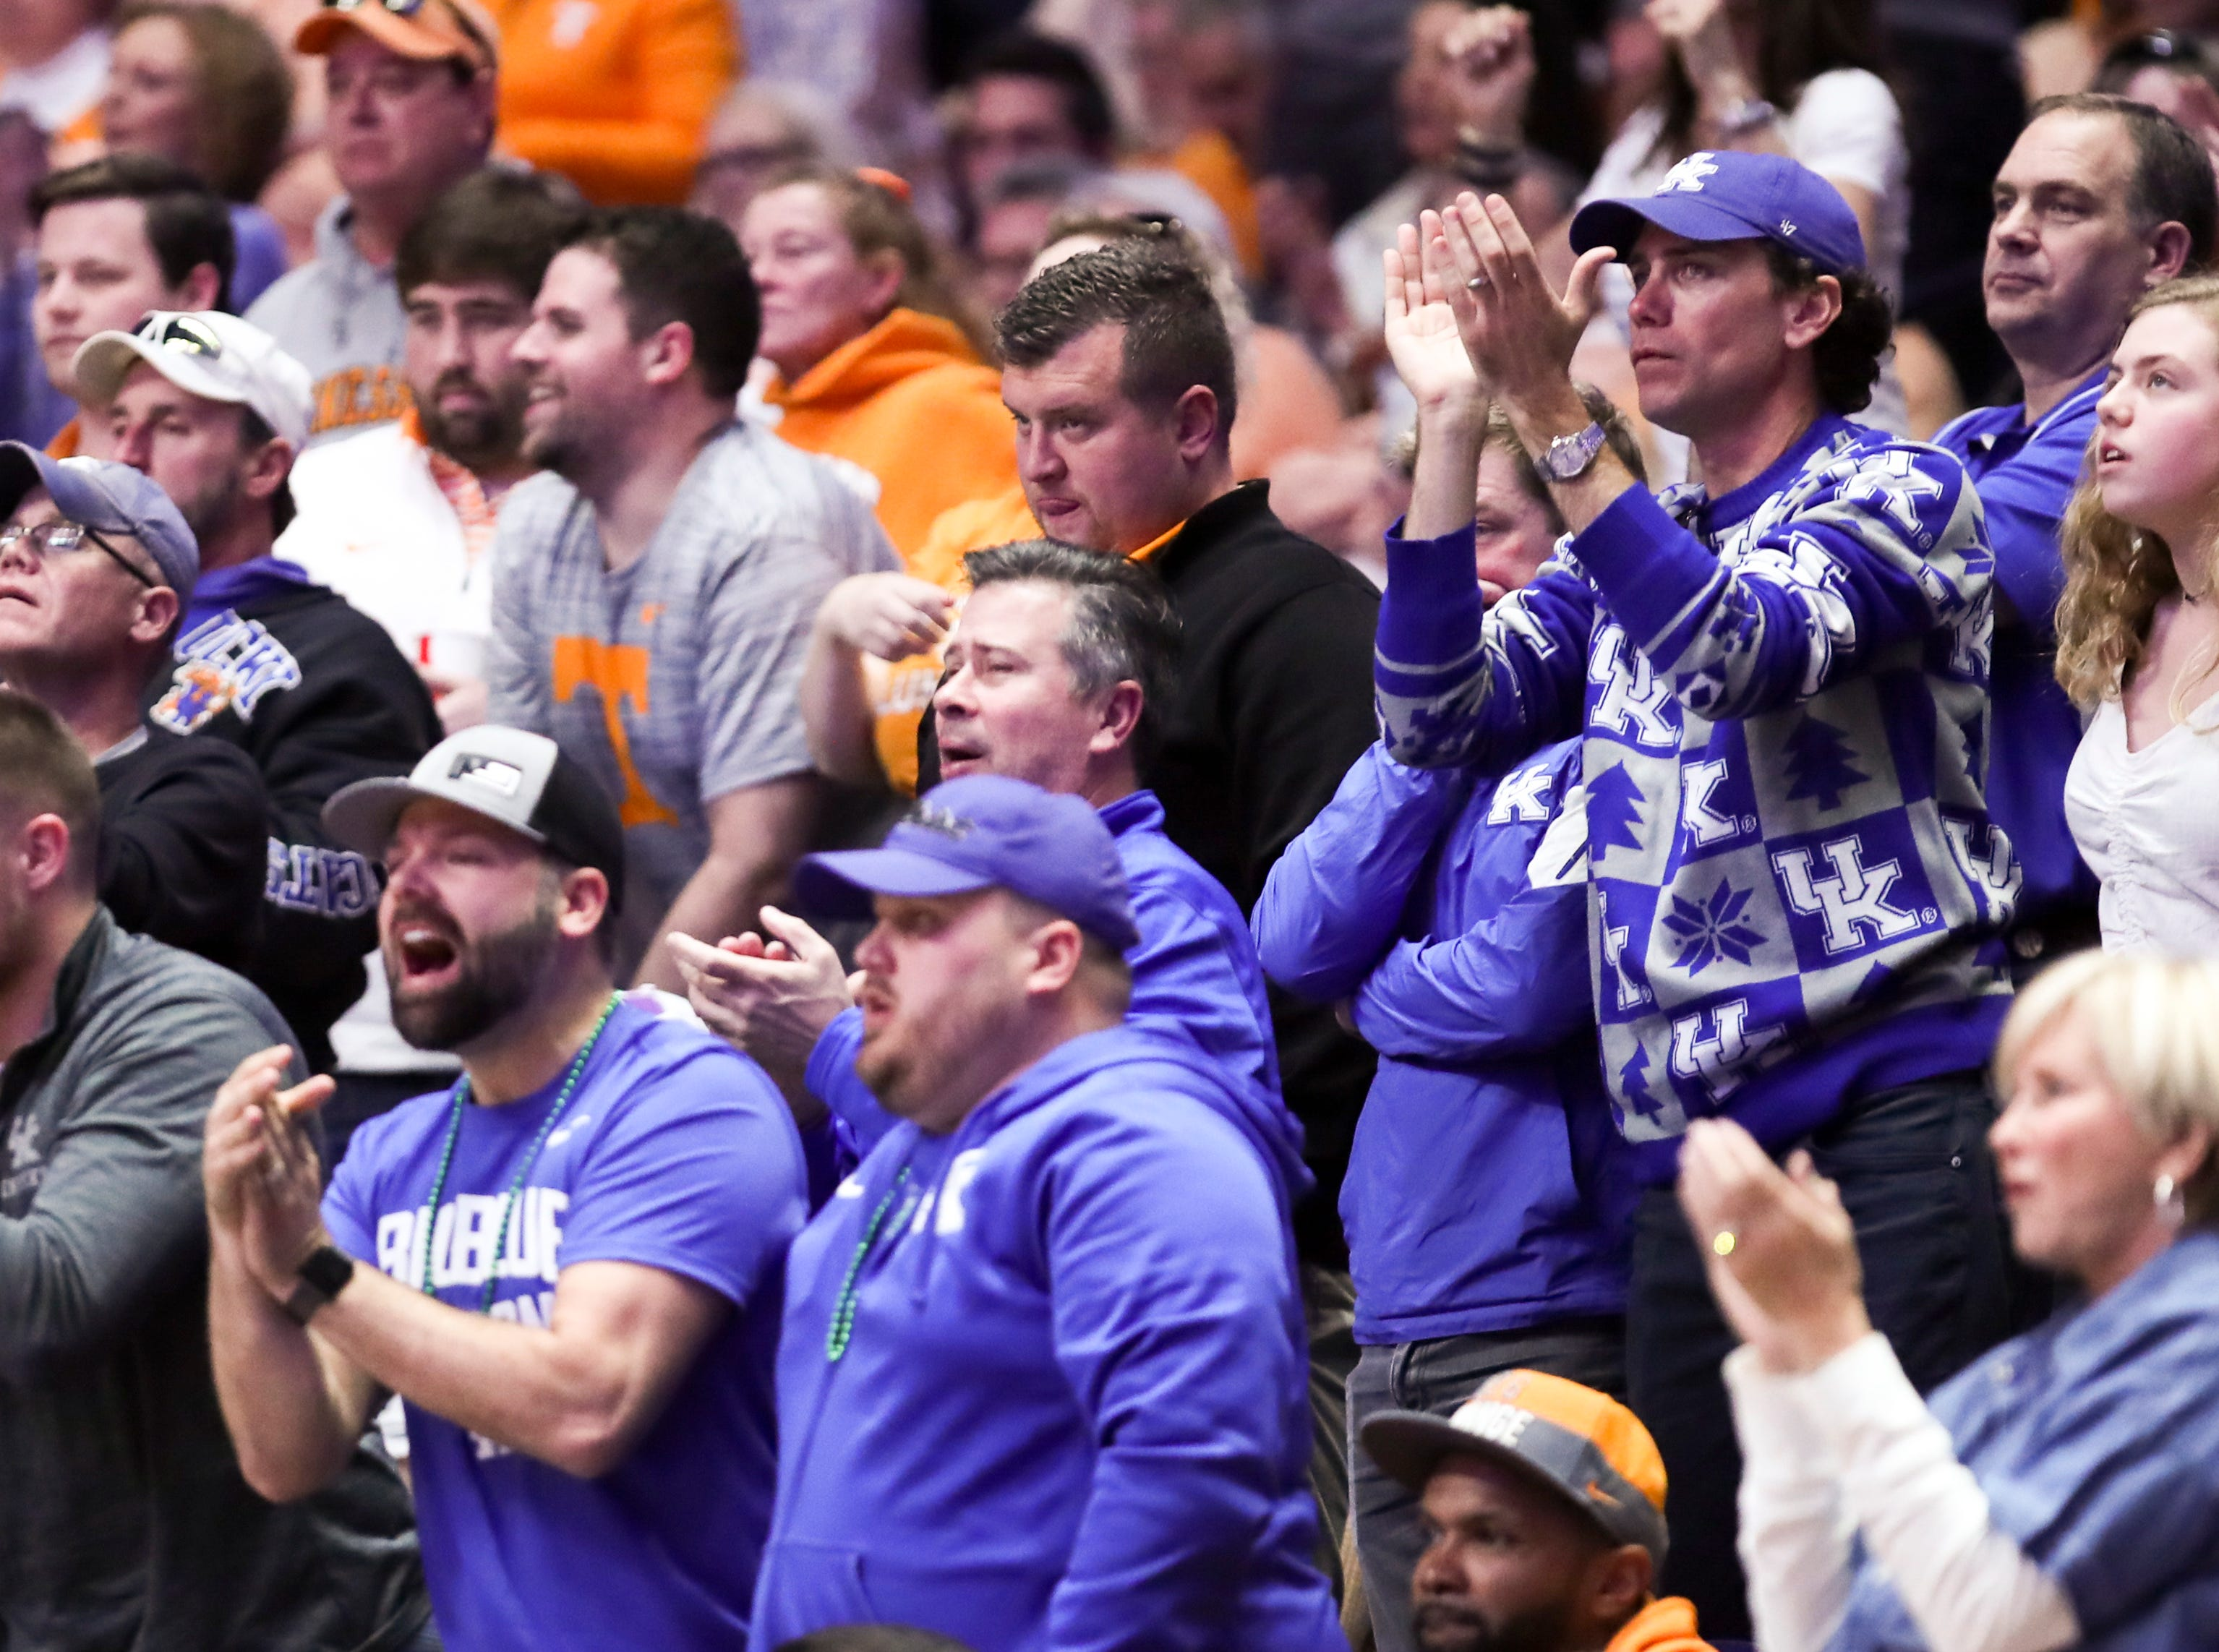 Kentucky fans cheer against Tennessee during the first half of the SEC Men's Basketball Tournament semifinal game at Bridgestone Arena in Nashville, Tenn., Saturday, March 16, 2019.